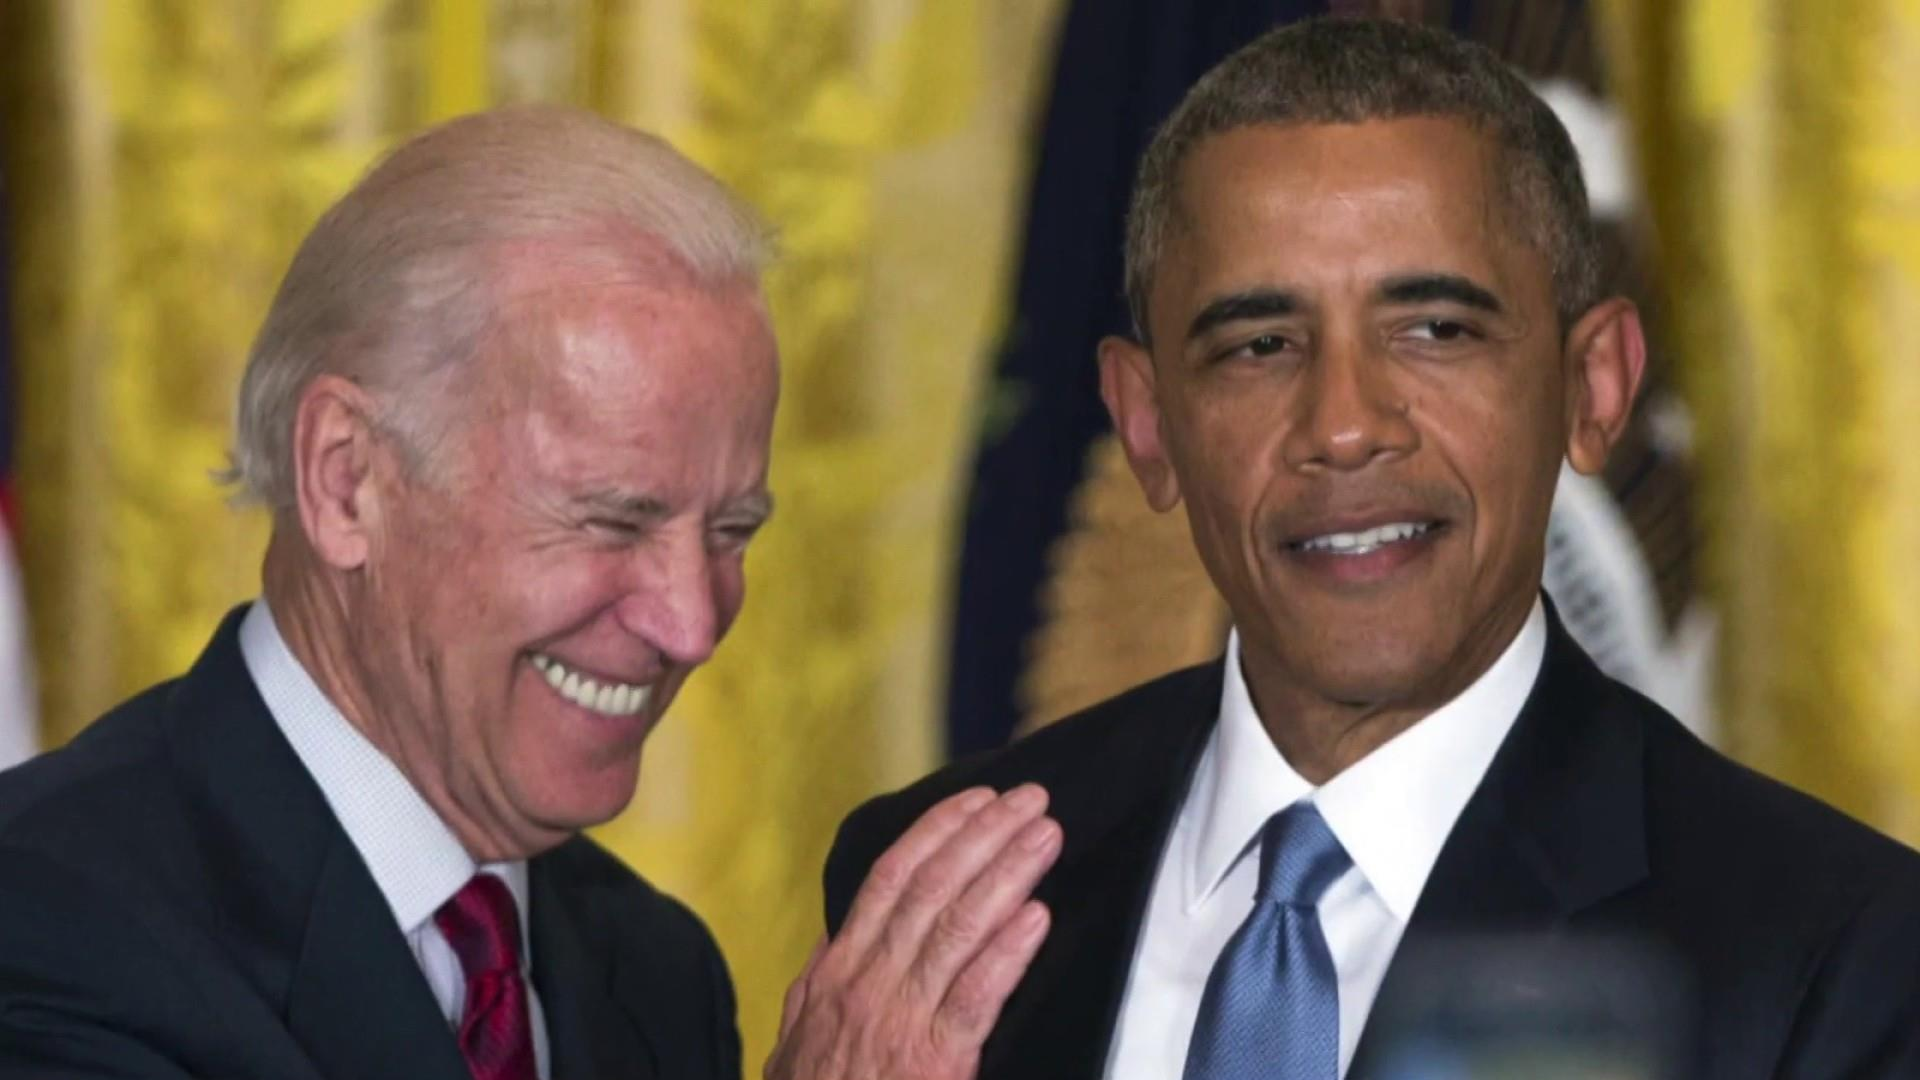 Obama legacy takes friendly fire in debate attacks on Joe Biden